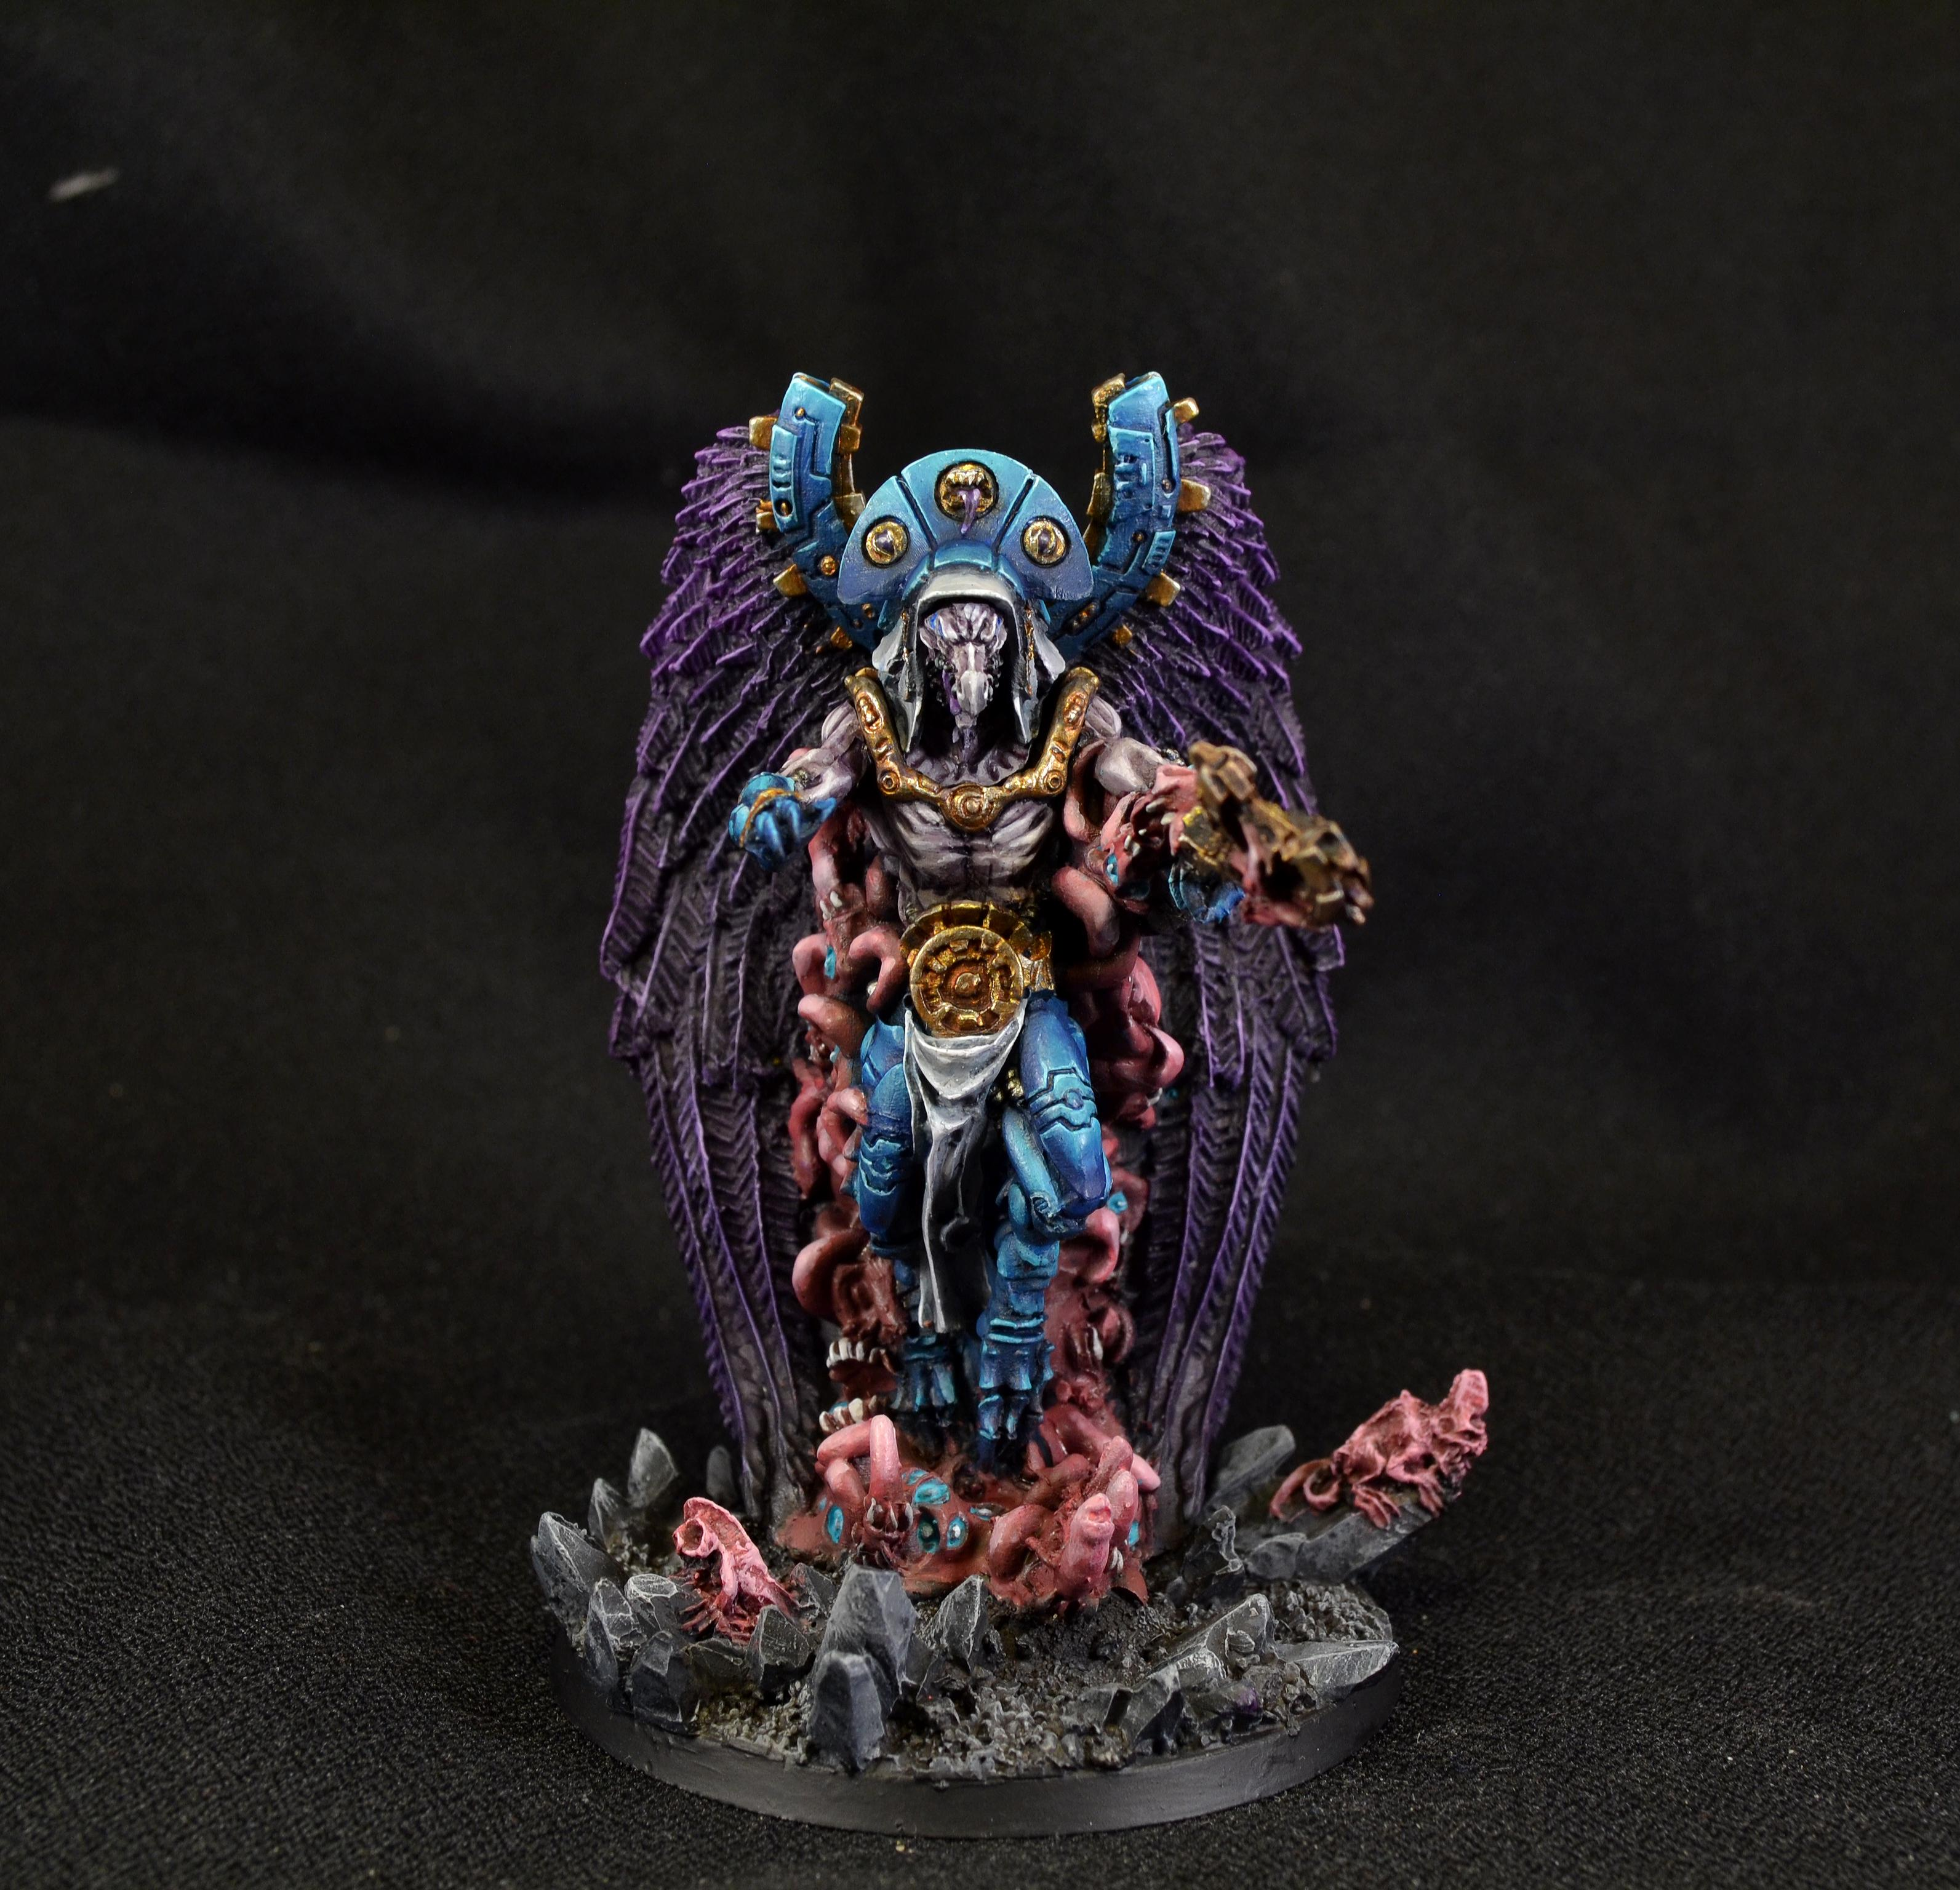 Conversion, Daemons, Greater Daemon, Lord Of Change, Tzeentch